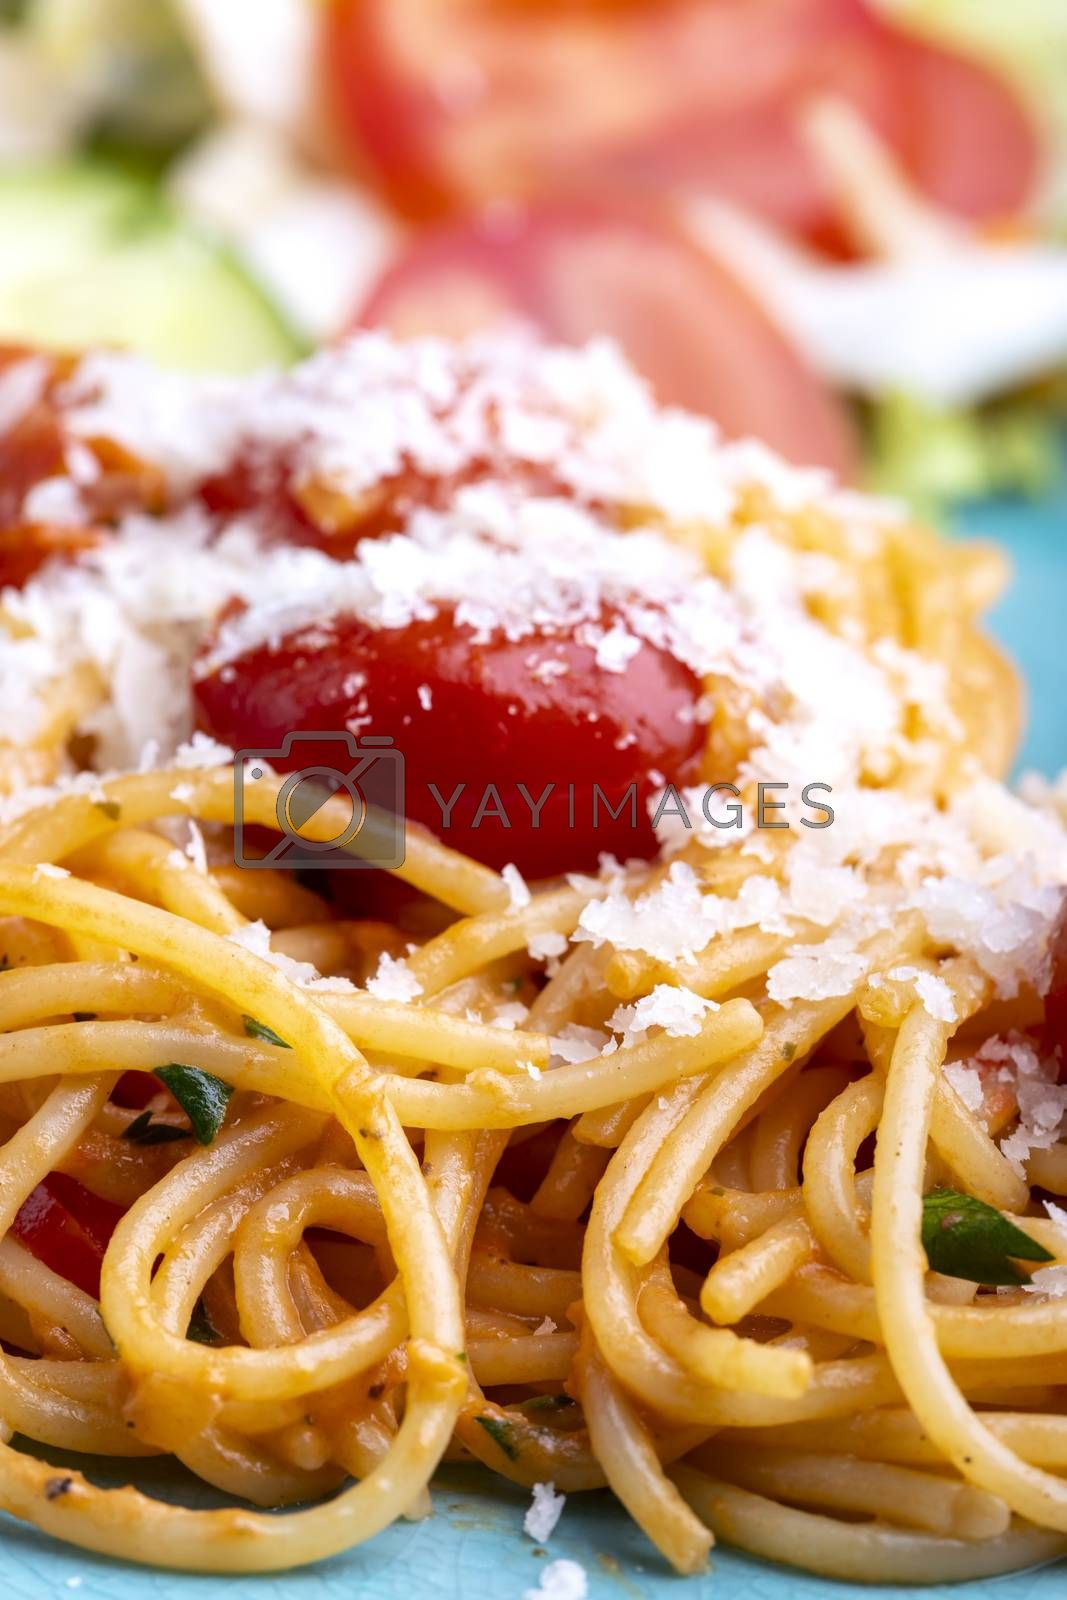 spaghetti pasta with cherry tomatoes